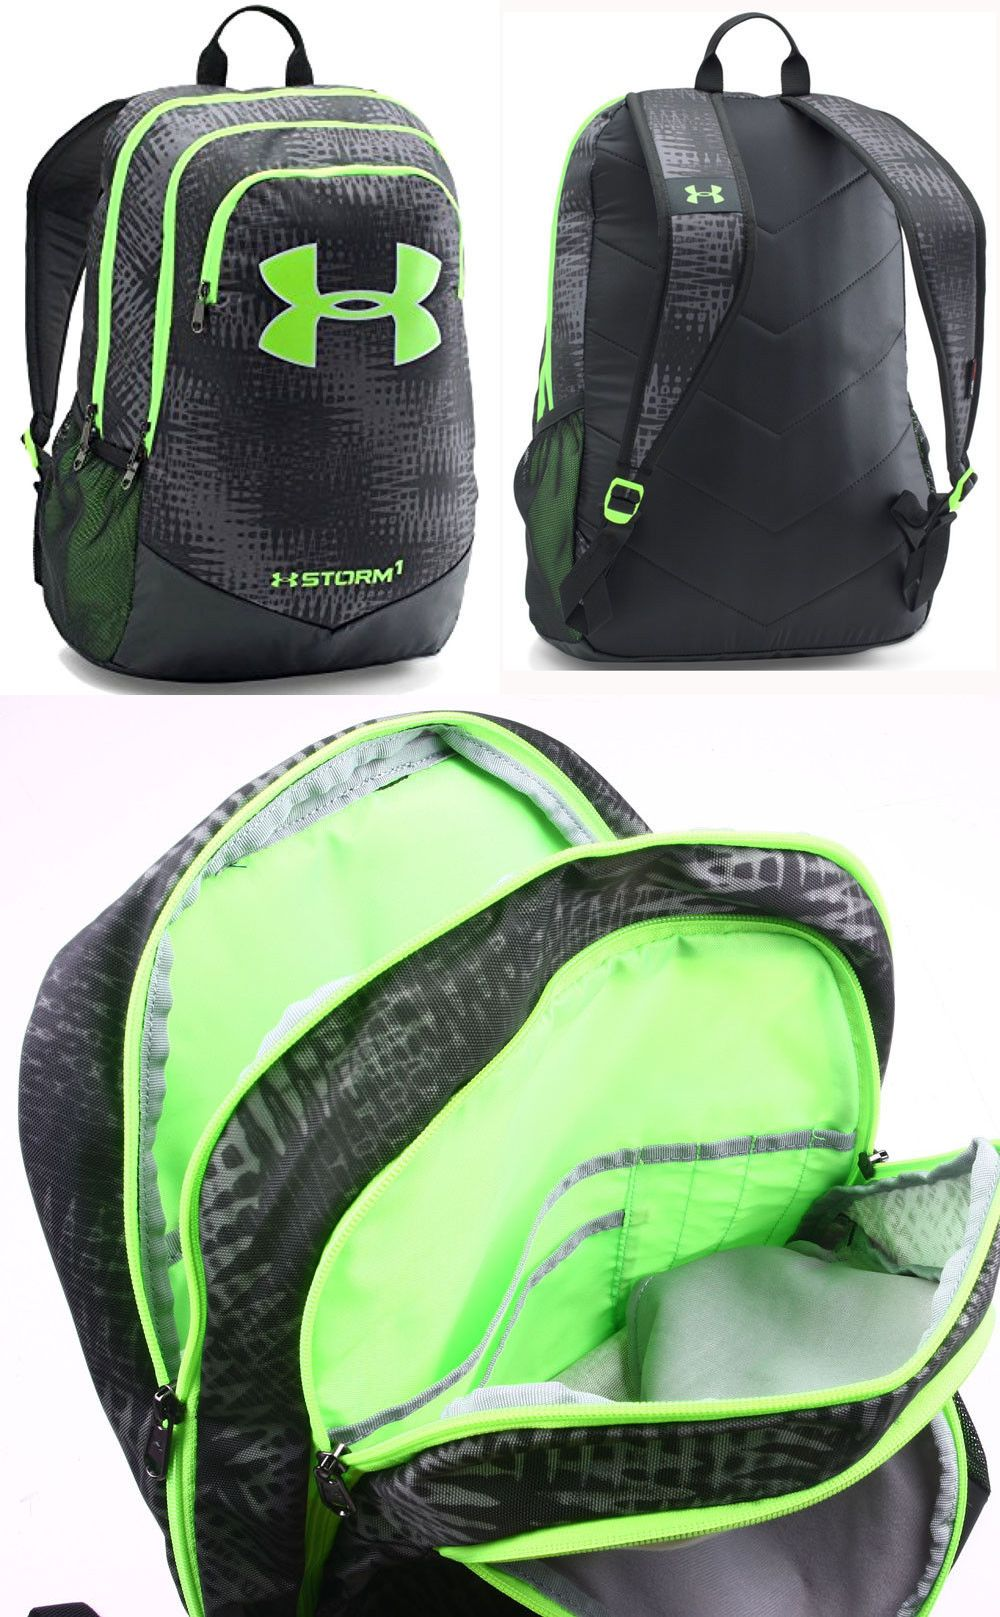 Backpacks and Bags 57882  Under Armour Boys Ua Storm Scrimmage Backpack  1277422 Graphite Black -  BUY IT NOW ONLY   44.99 on eBay! 2dc9a6042c3c8